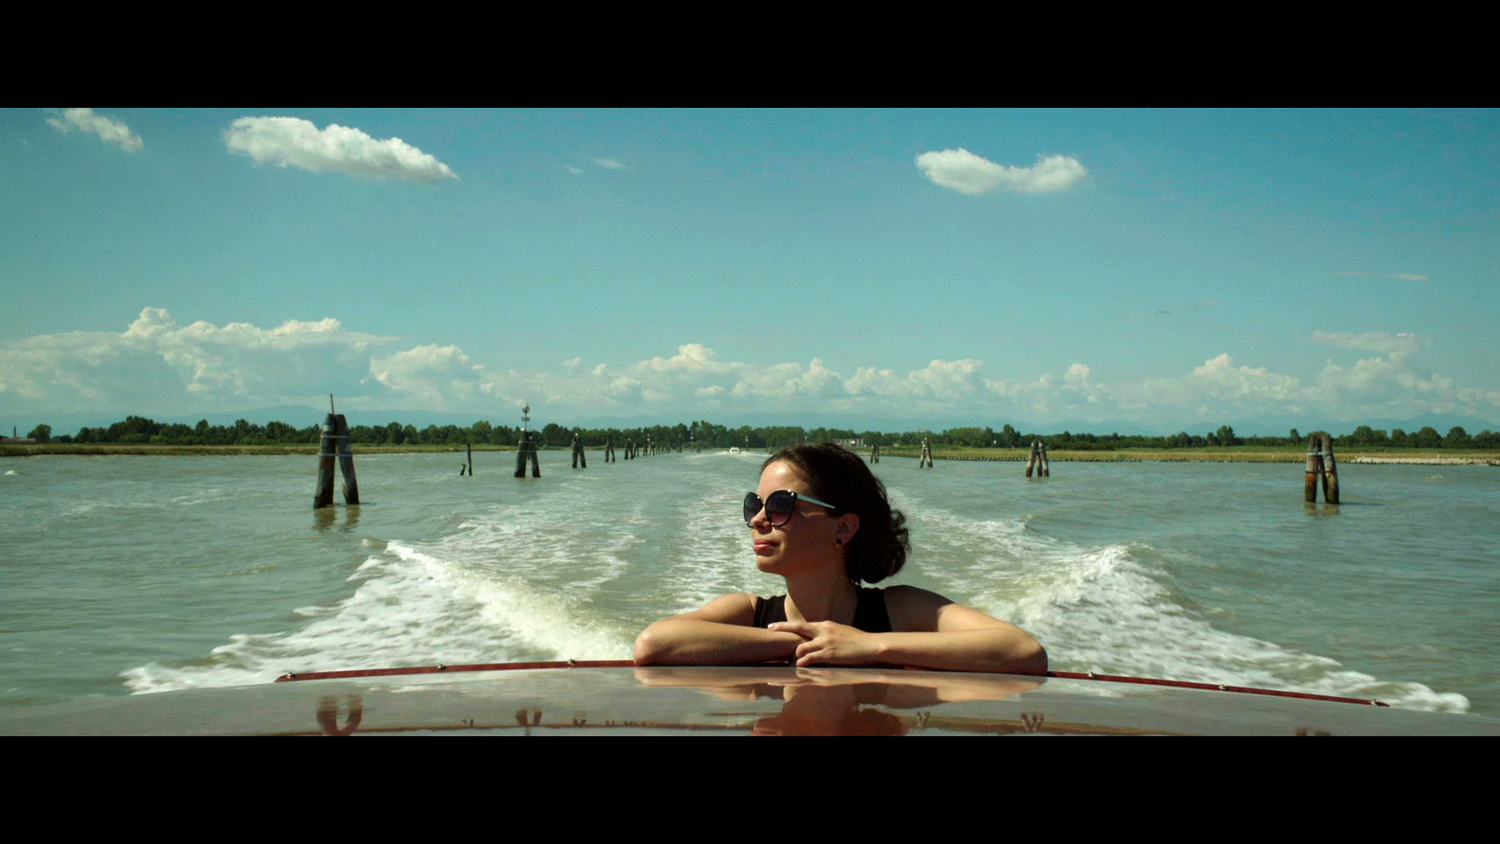 MEET ME IN VENICE, DIRECTED BY EDDY TERSTALL